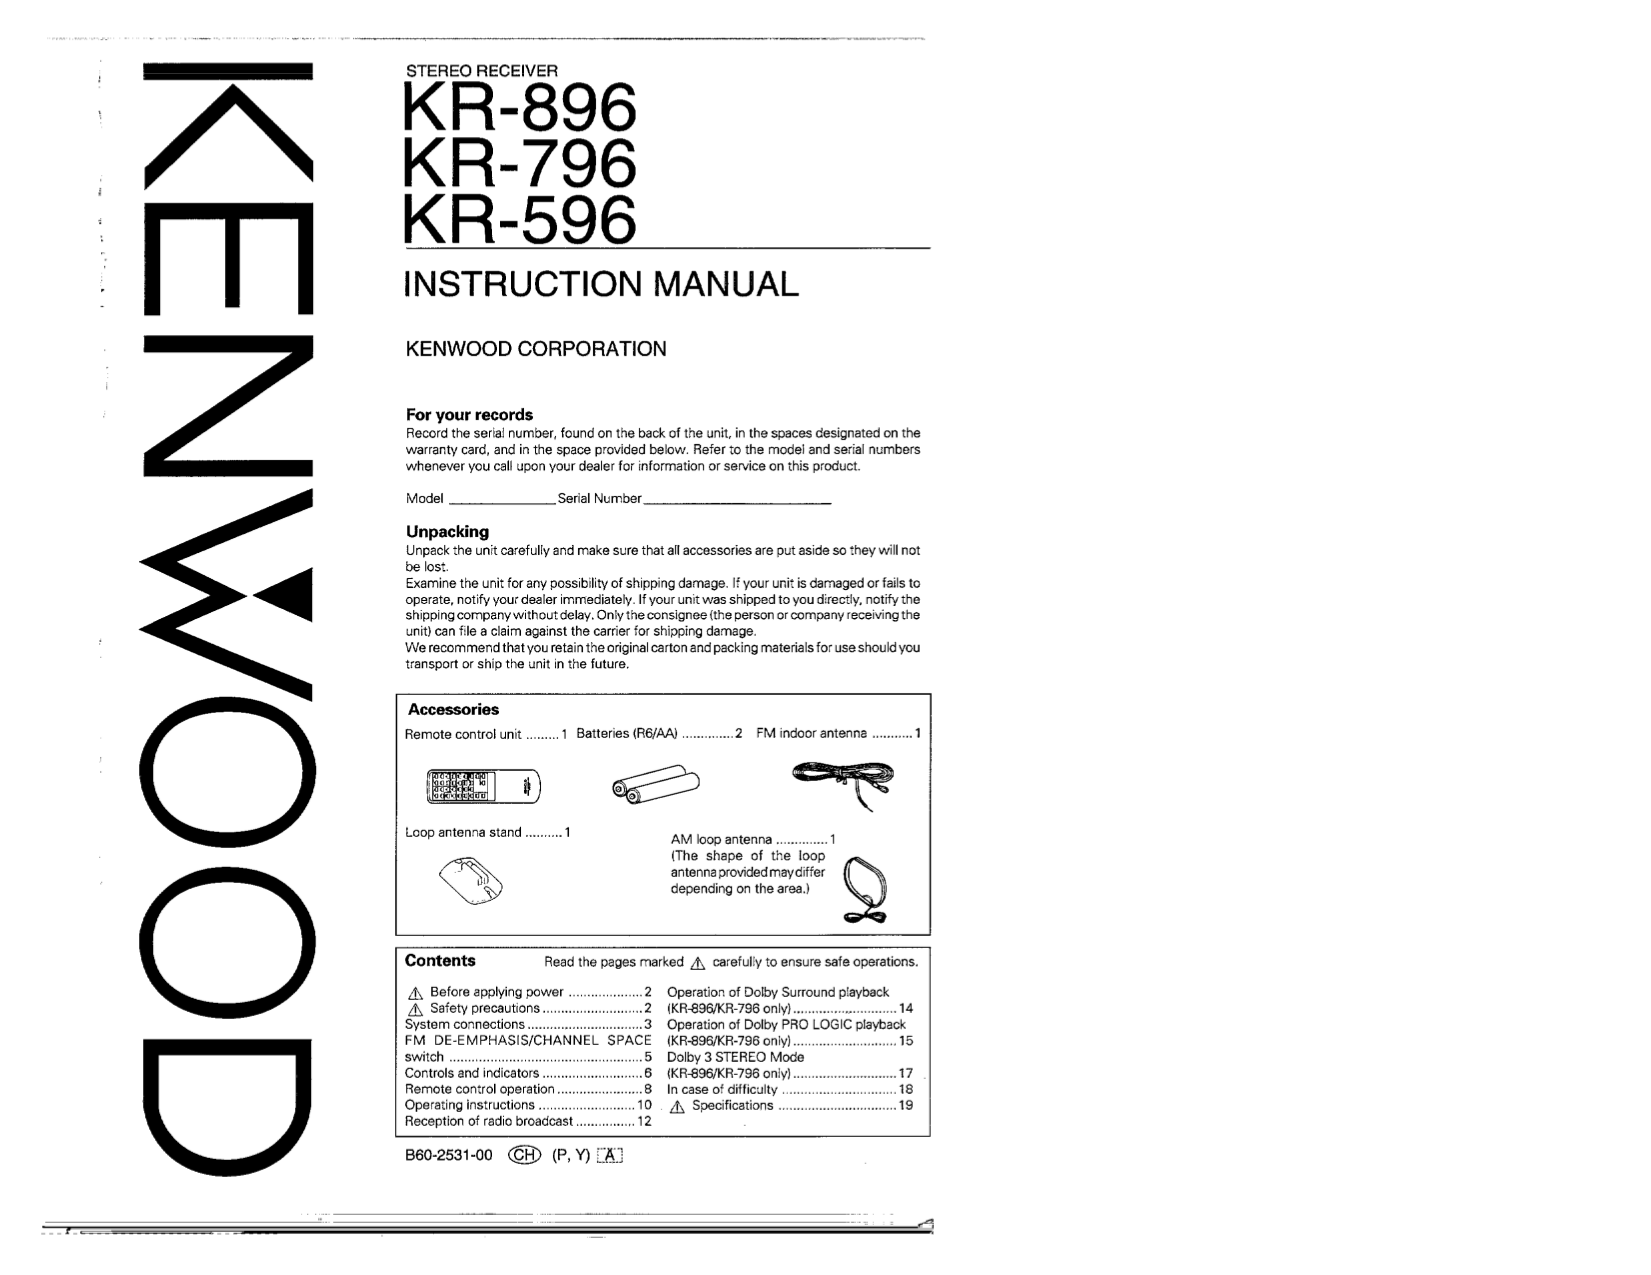 Download free pdf for Kenwood KR-596 Receiver manual